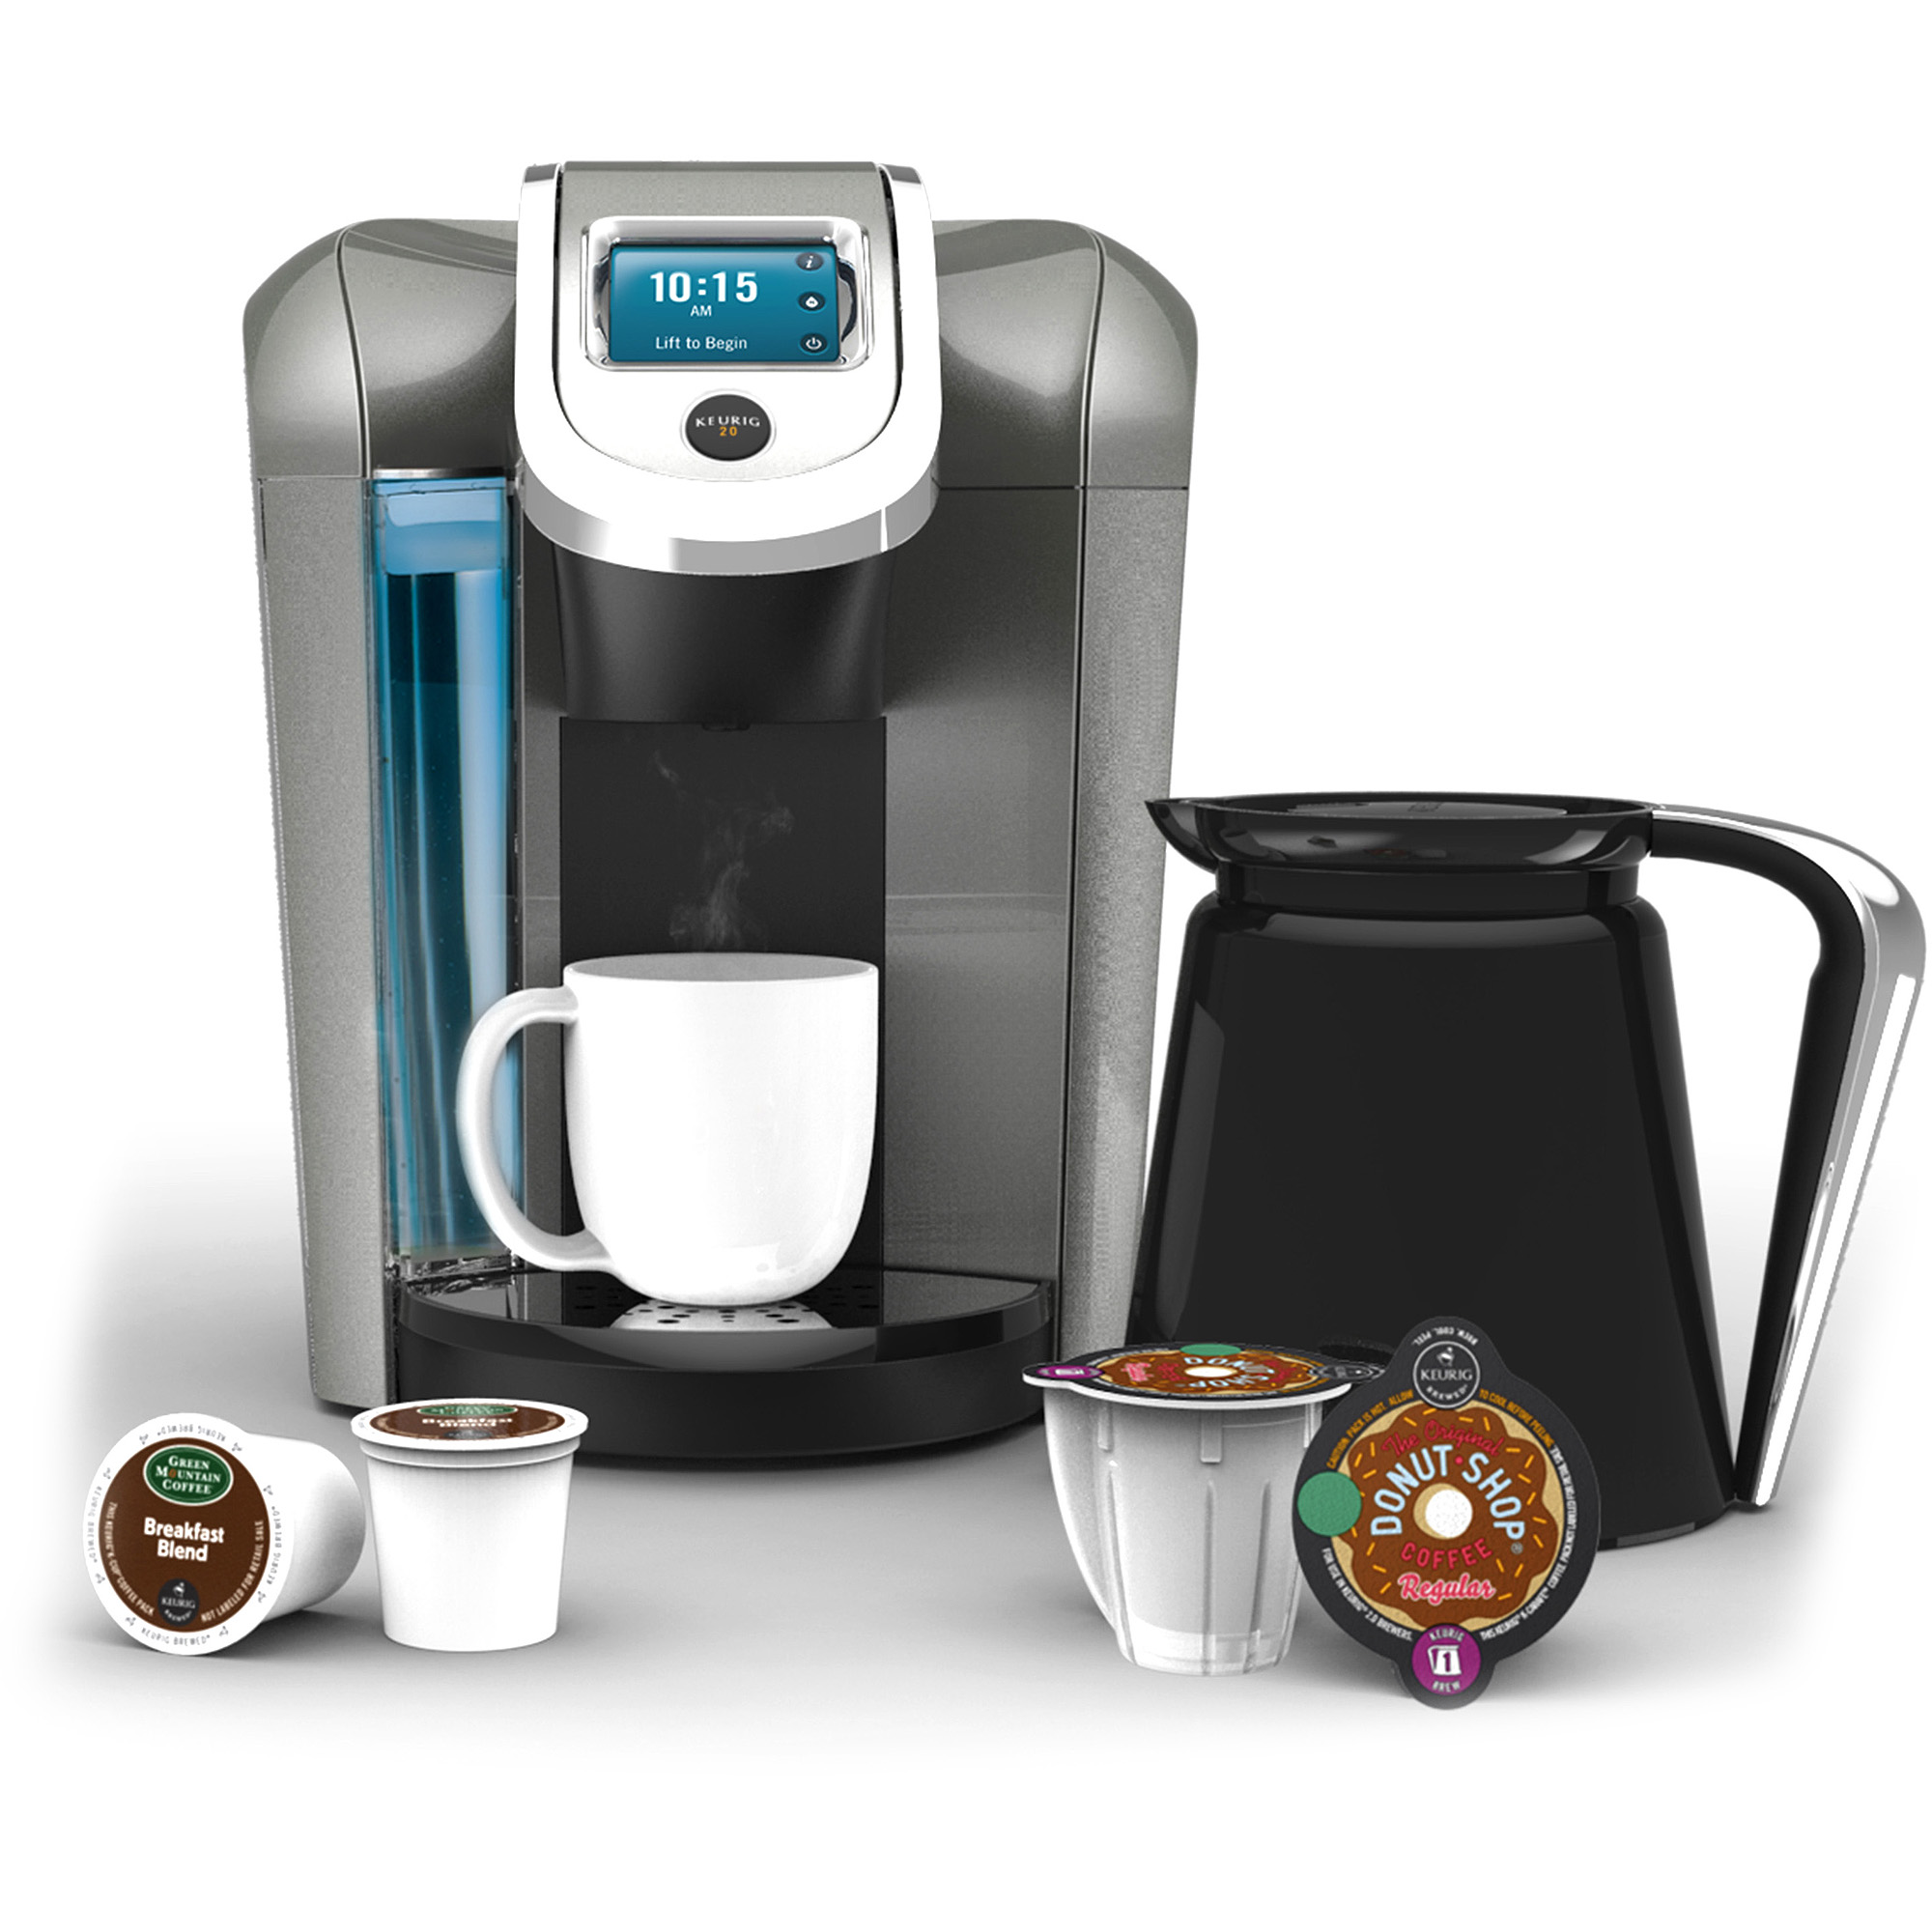 Keurig K500 and the Keurig K550 Single-Serve Coffee Machines